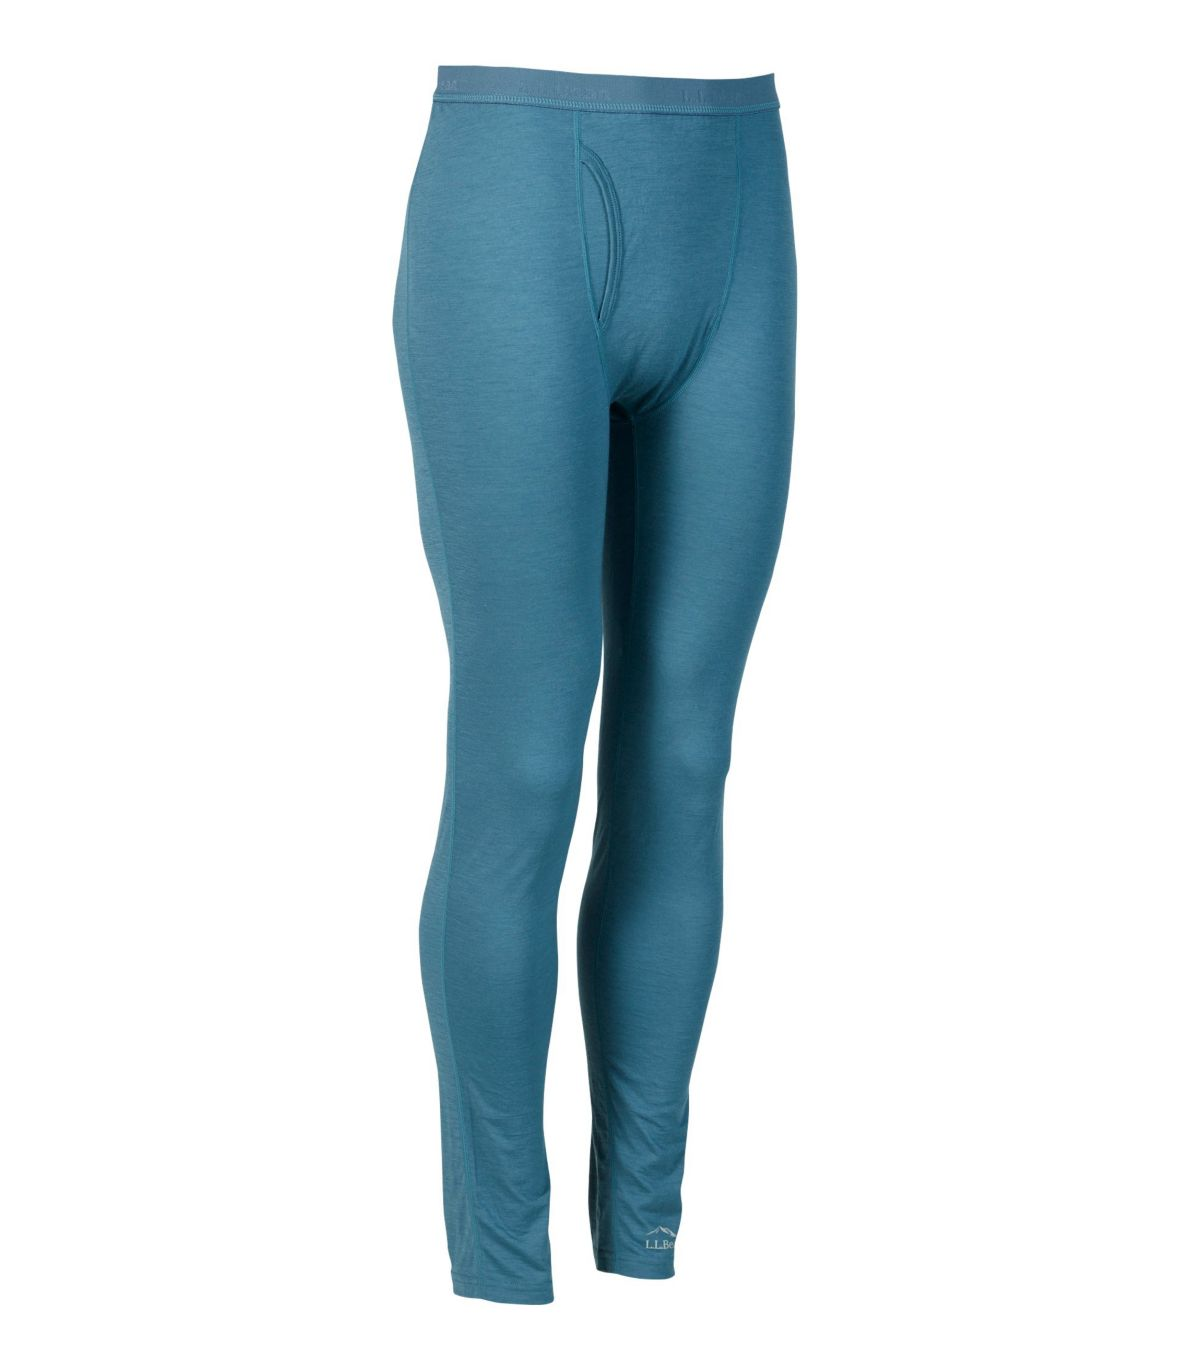 Men's Cresta Wool Ultralight Base Layer, Pants